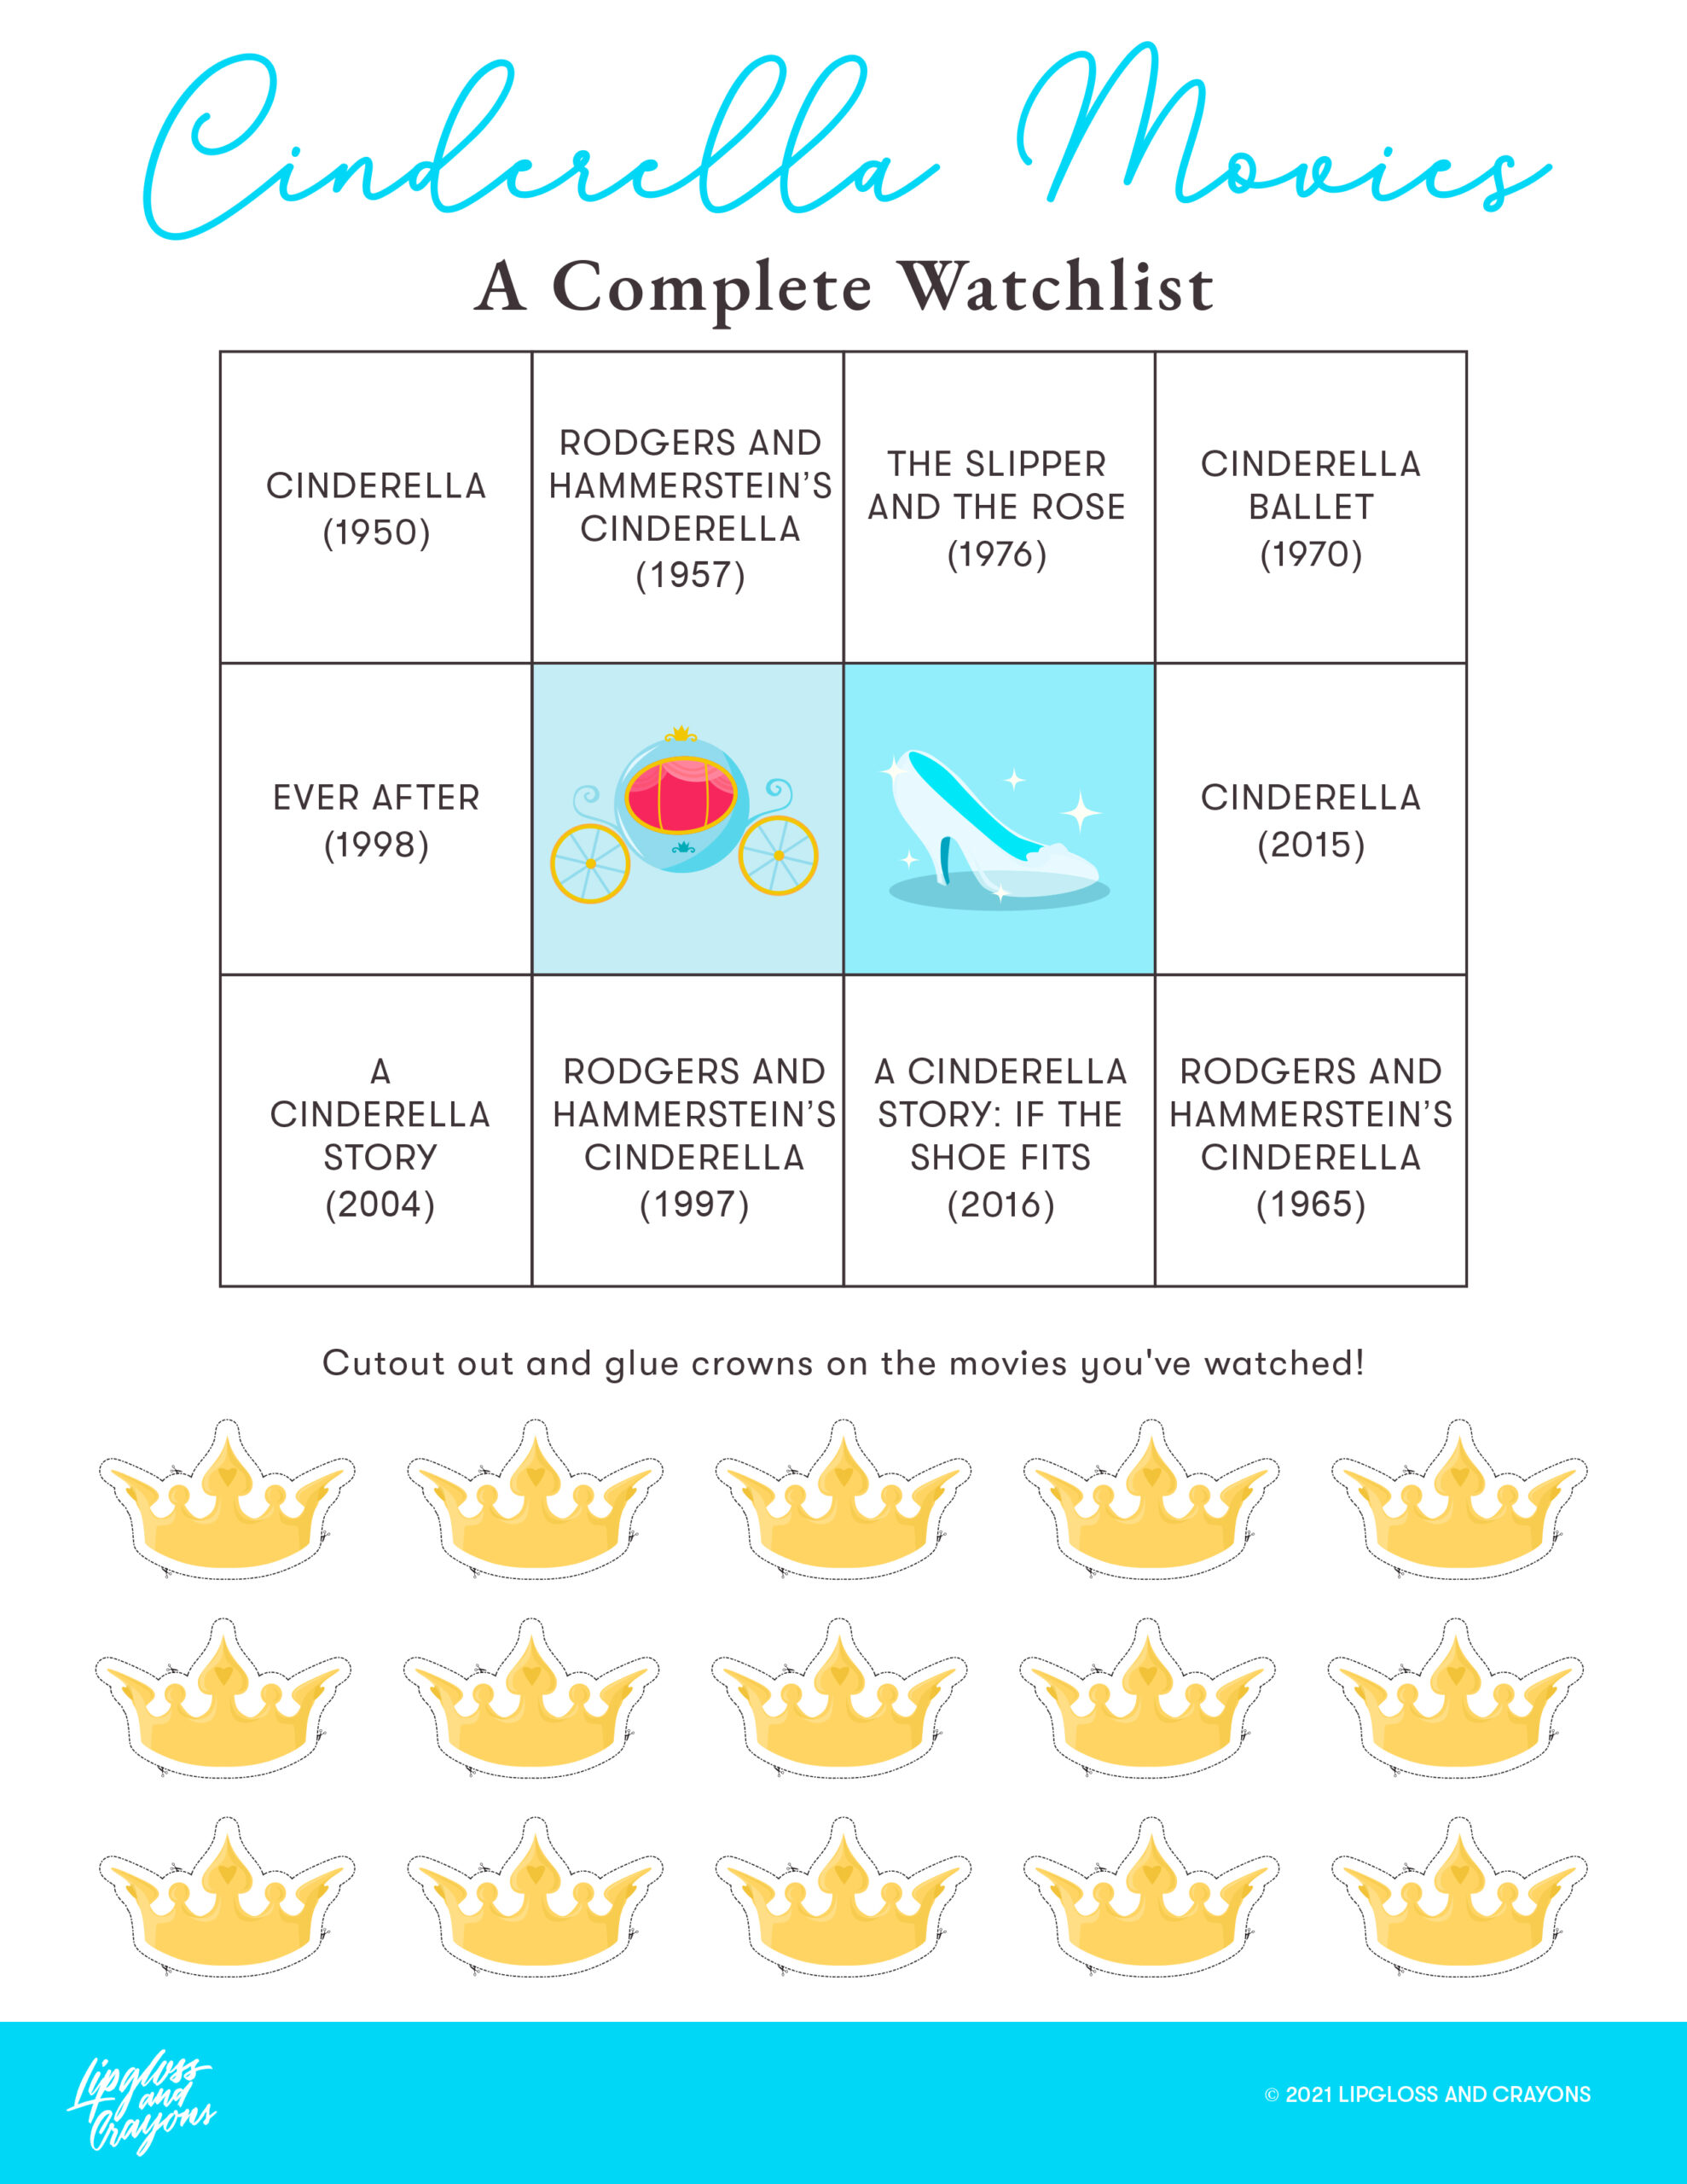 Free Printable: This list of Cinderella movies will tell you all the best ones and where to find them! And the bingo board is a ton of fun to complete!